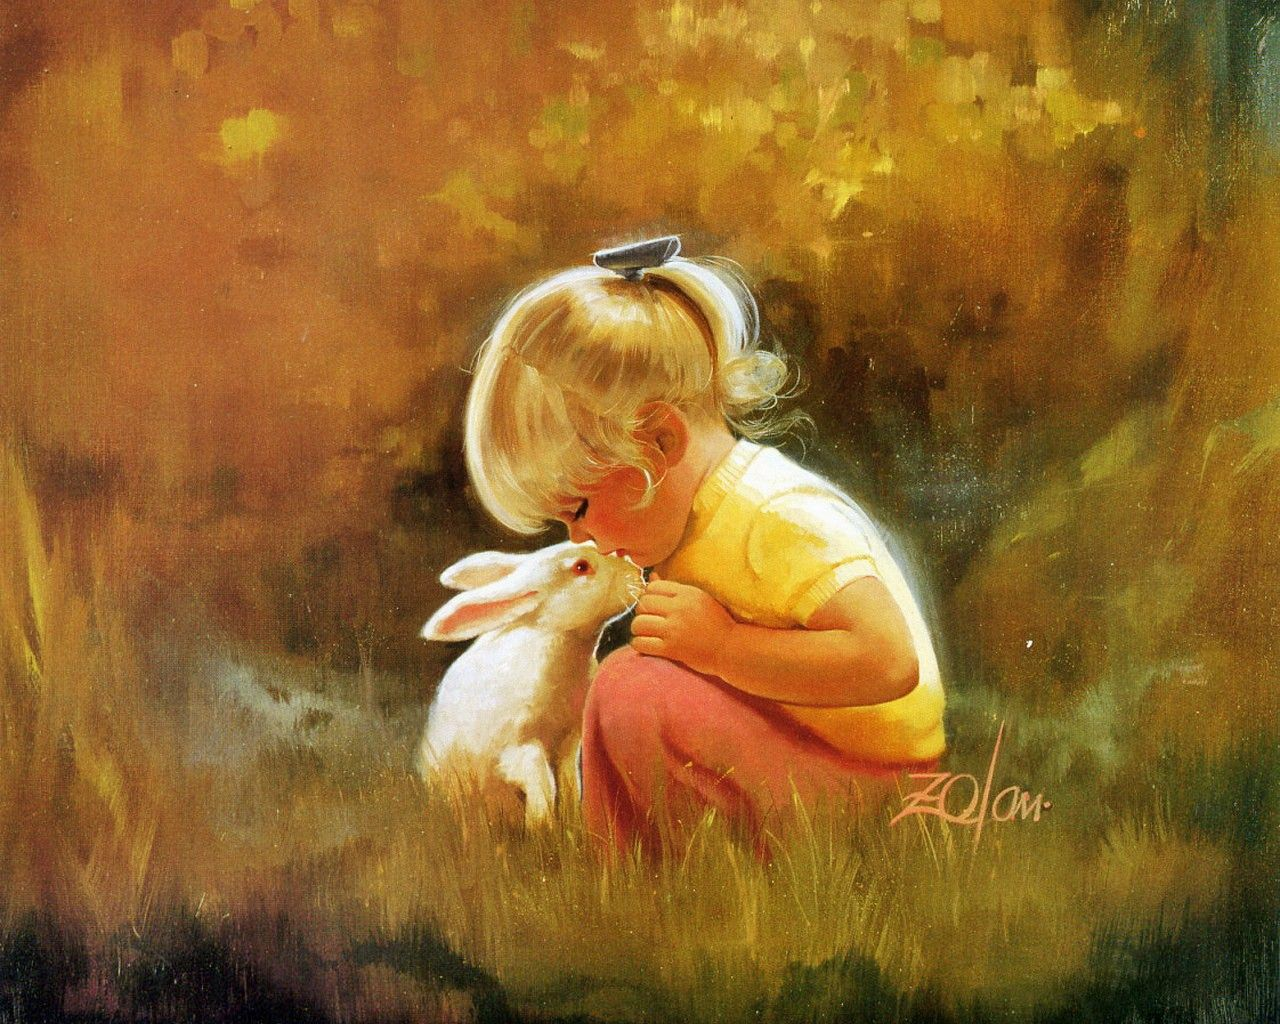 A Lovely Baby Girl And Her Obdient Pet Kissing Each Other The Scene Is Warm Cozy Oil Painting Wallpaper